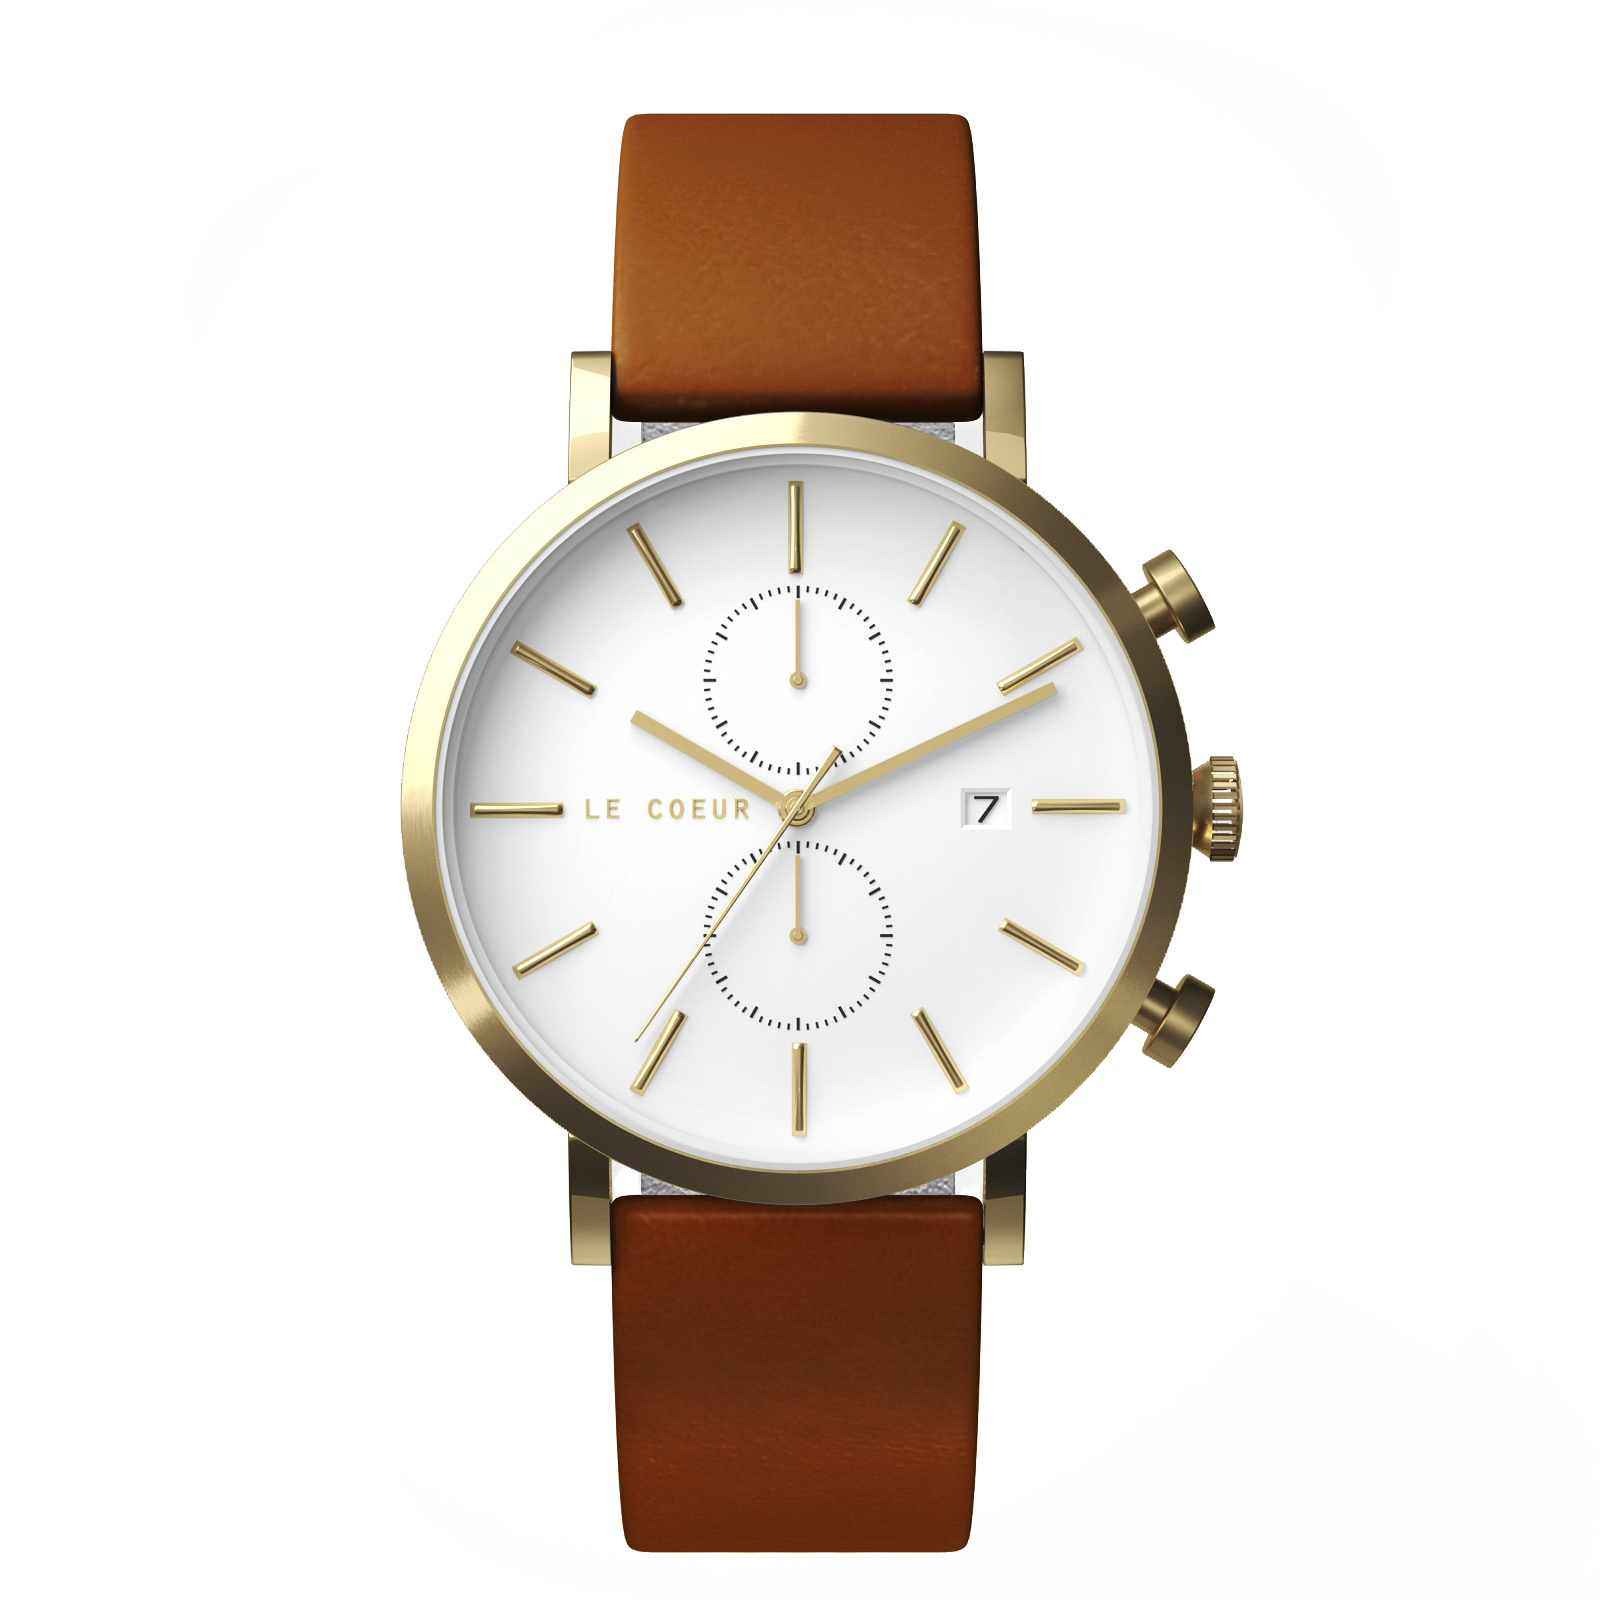 Chrono Collection from $60